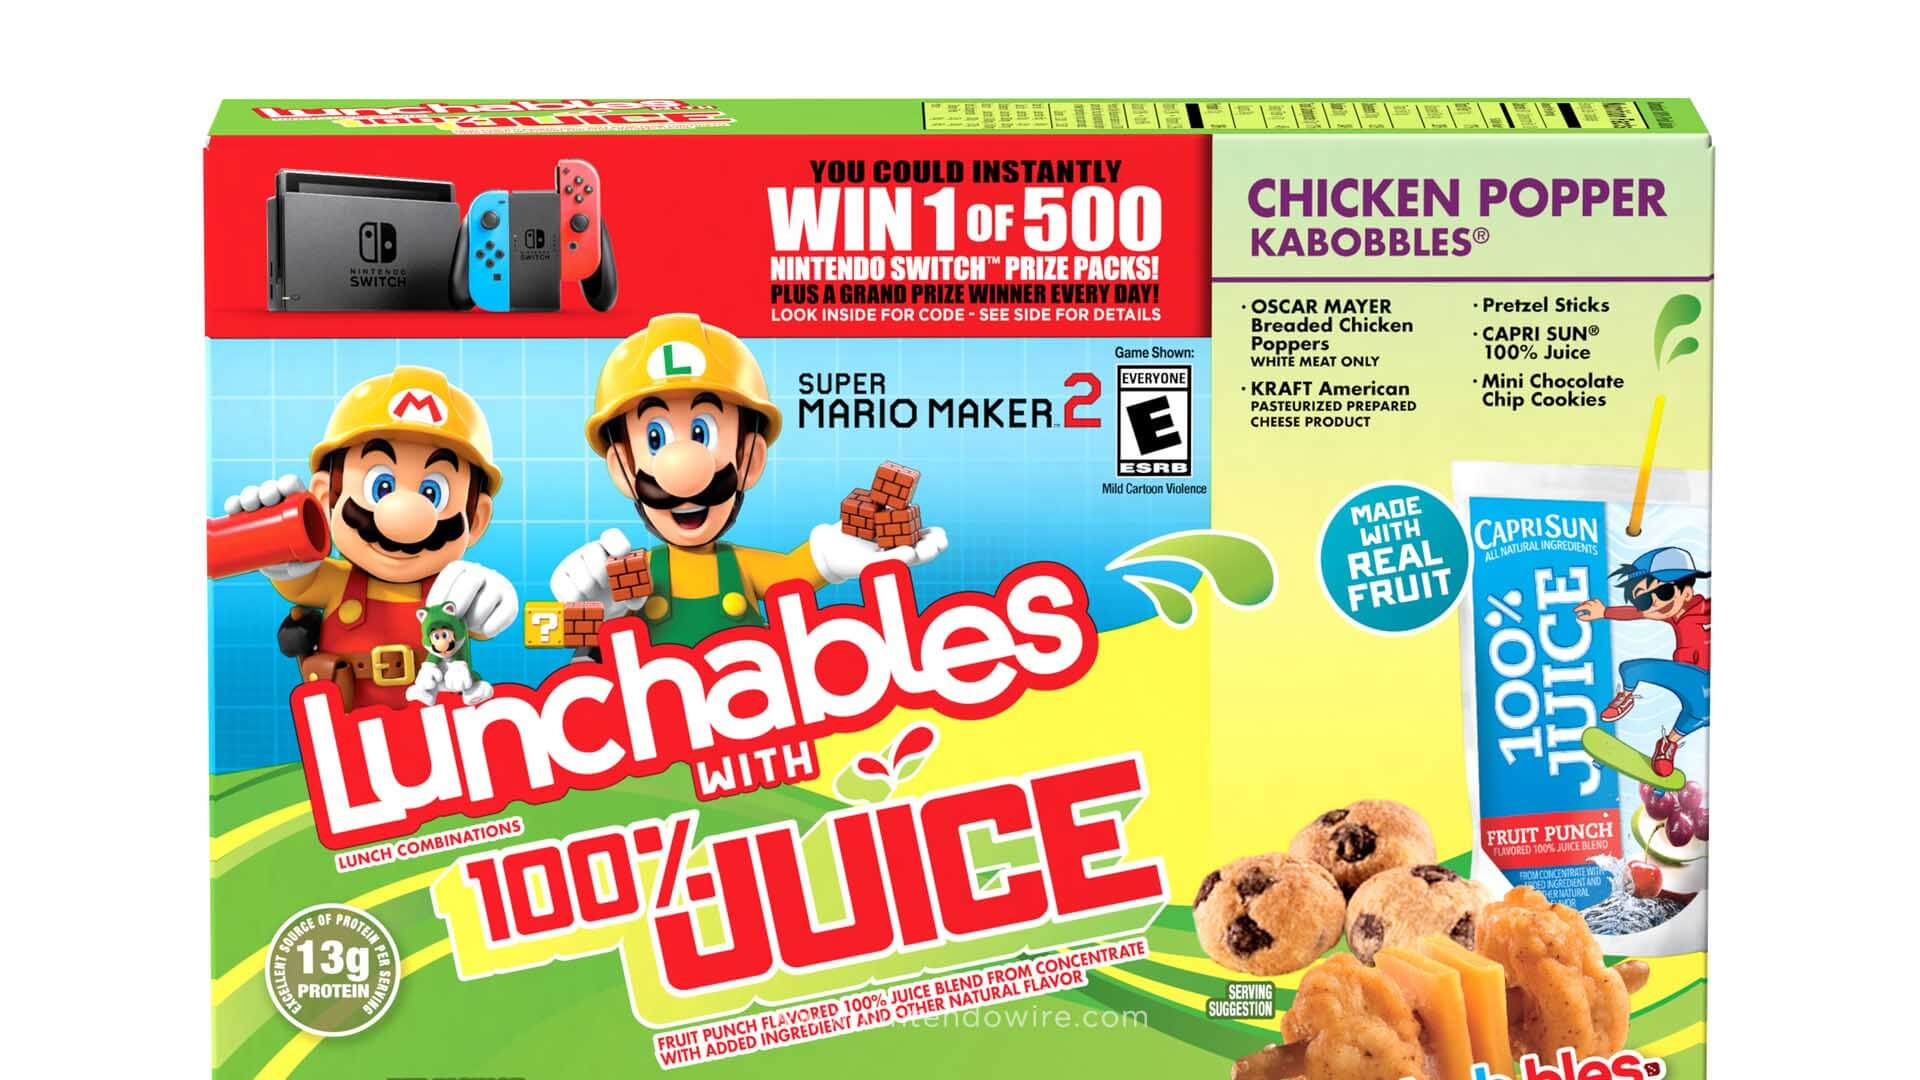 Nintendo-Powered Lunchables Set To Invade Lunchboxes